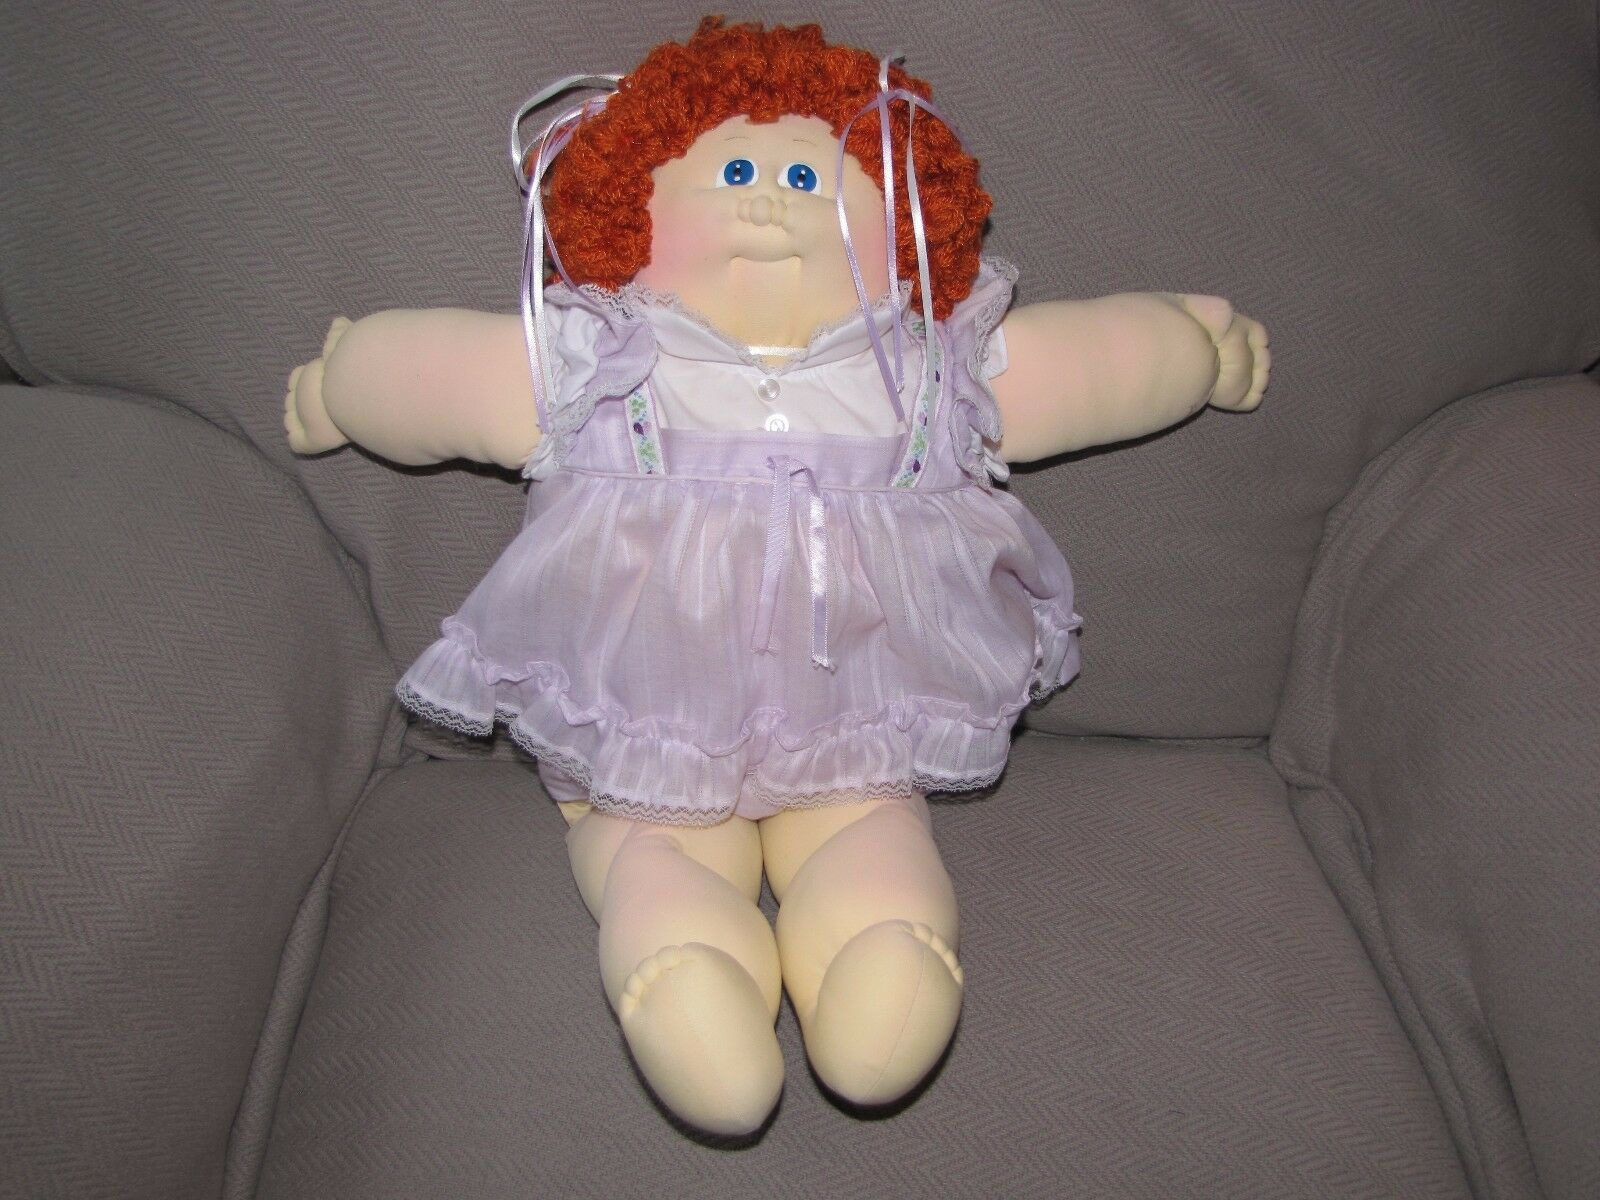 1985 Little People Soft Sculpture Doll Cabbage Patch Kid Xavier Roberts rot Hair